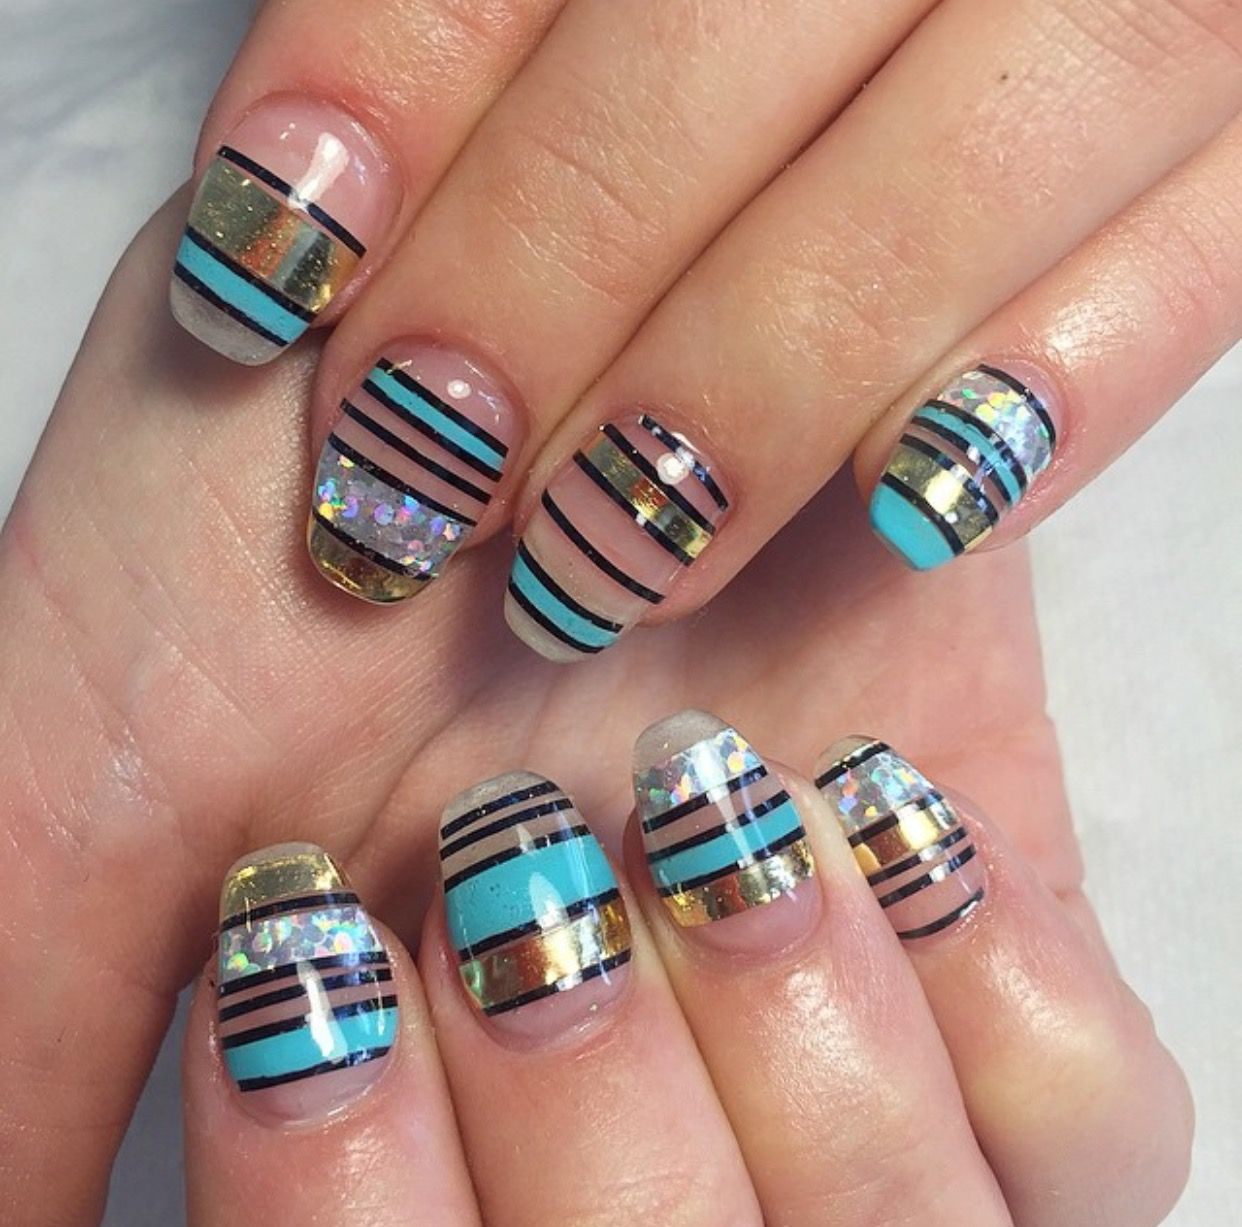 Pin on Nail Party | Pinterest